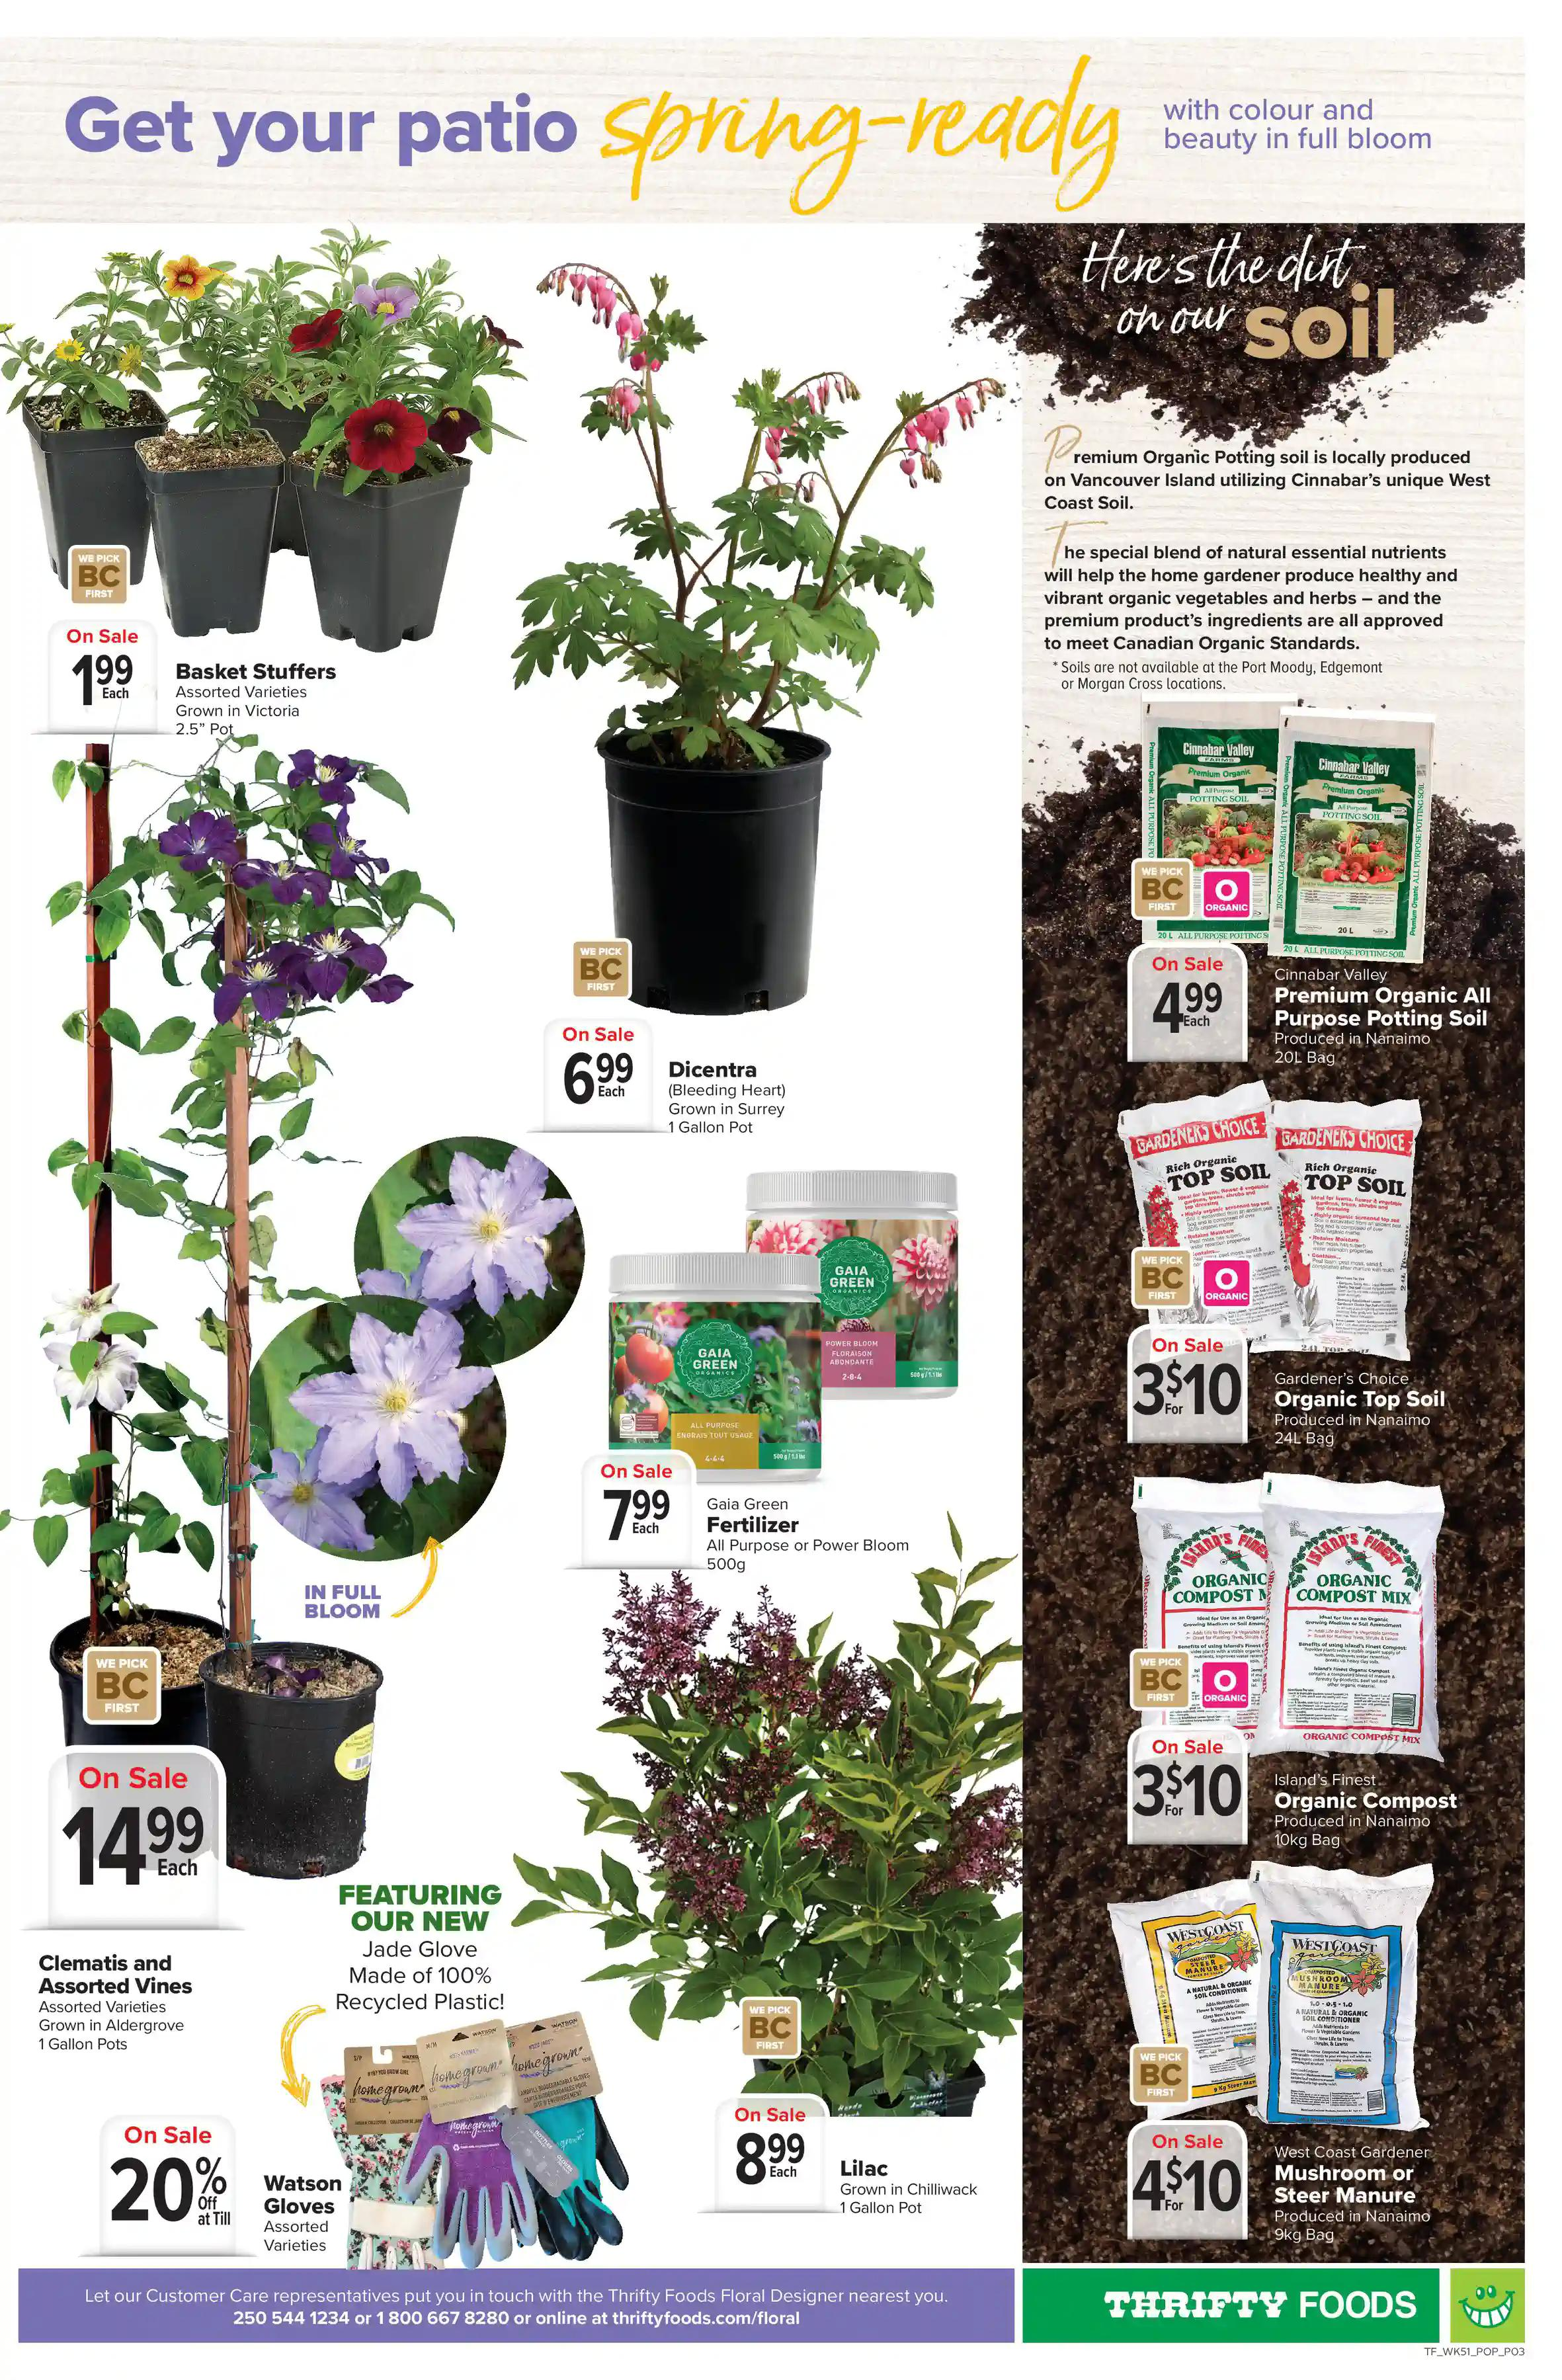 Thrifty Foods - Weekly Flyer Specials - Page 9